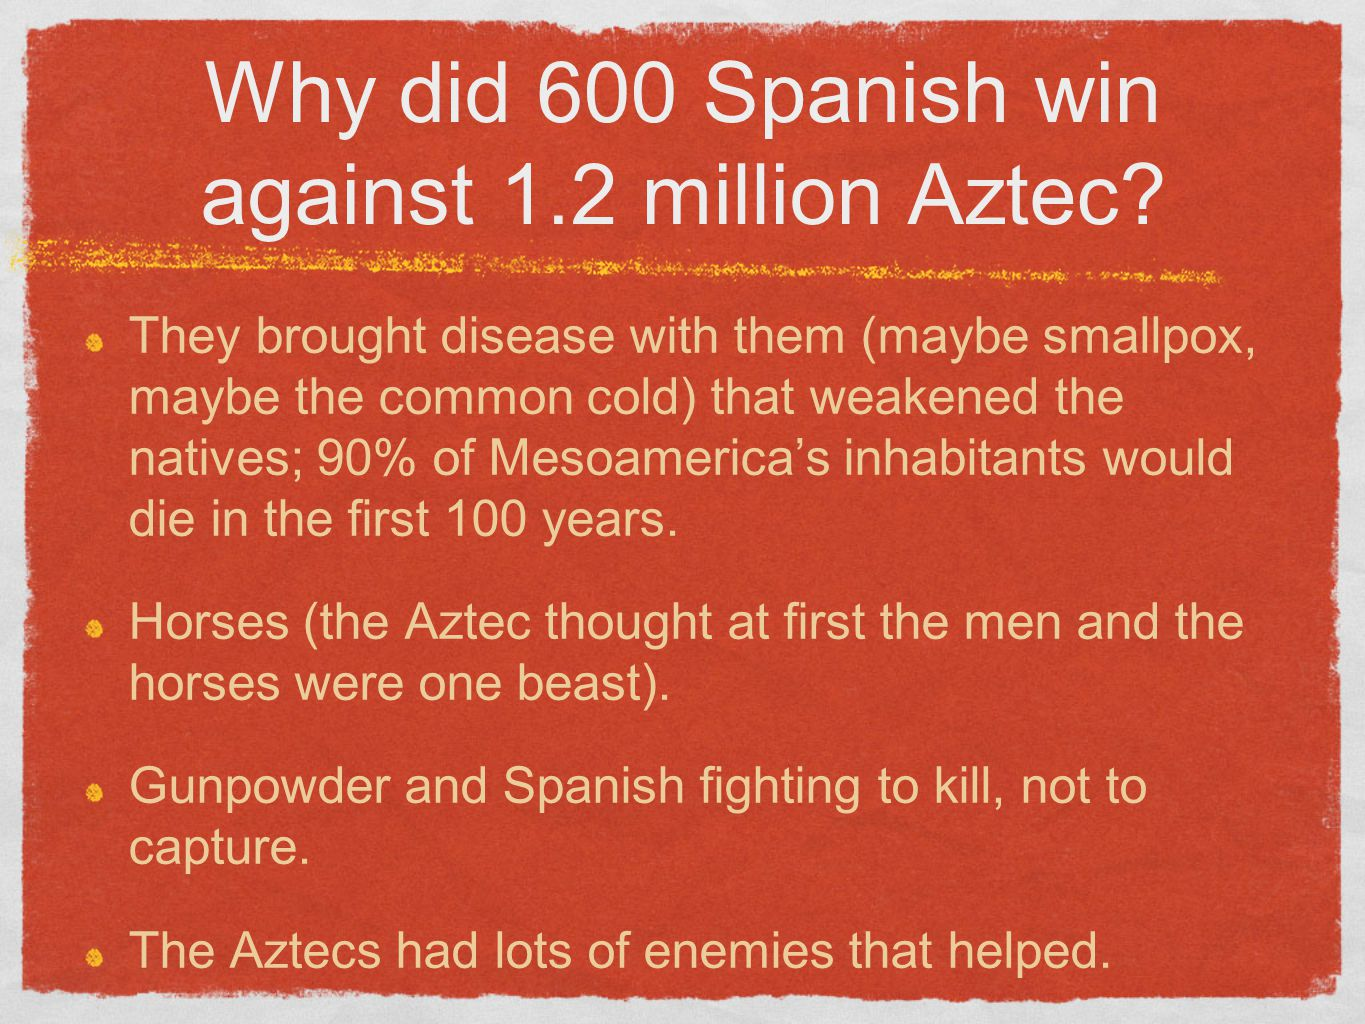 Why did 600 Spanish win against 1.2 million Aztec